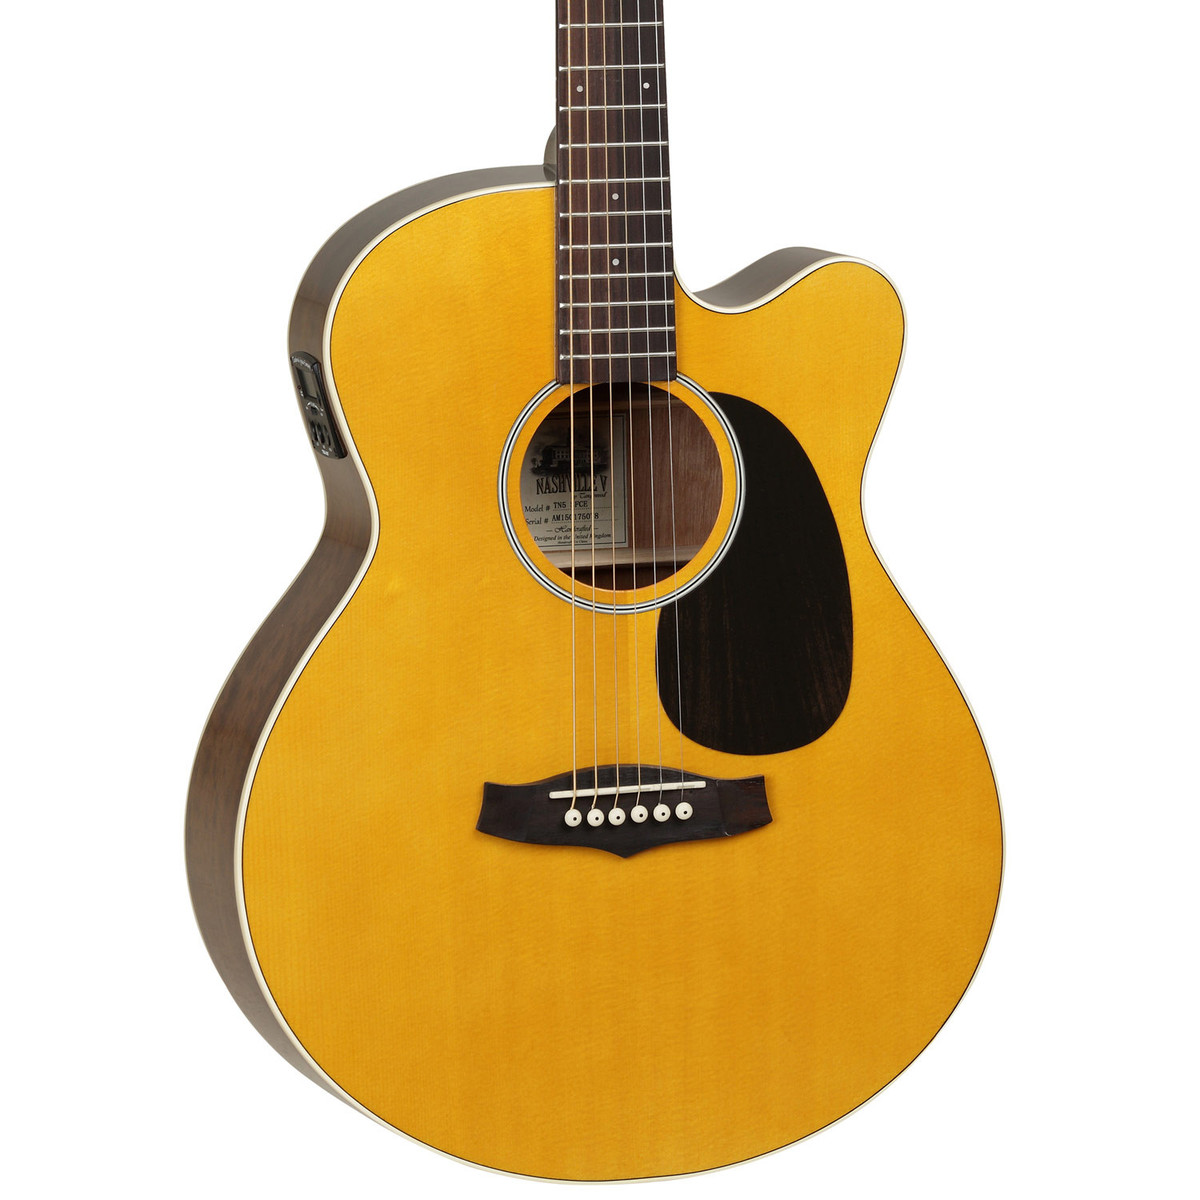 Tanglewood tn5 sfce electro acoustic guitar b stock at for The tanglewood